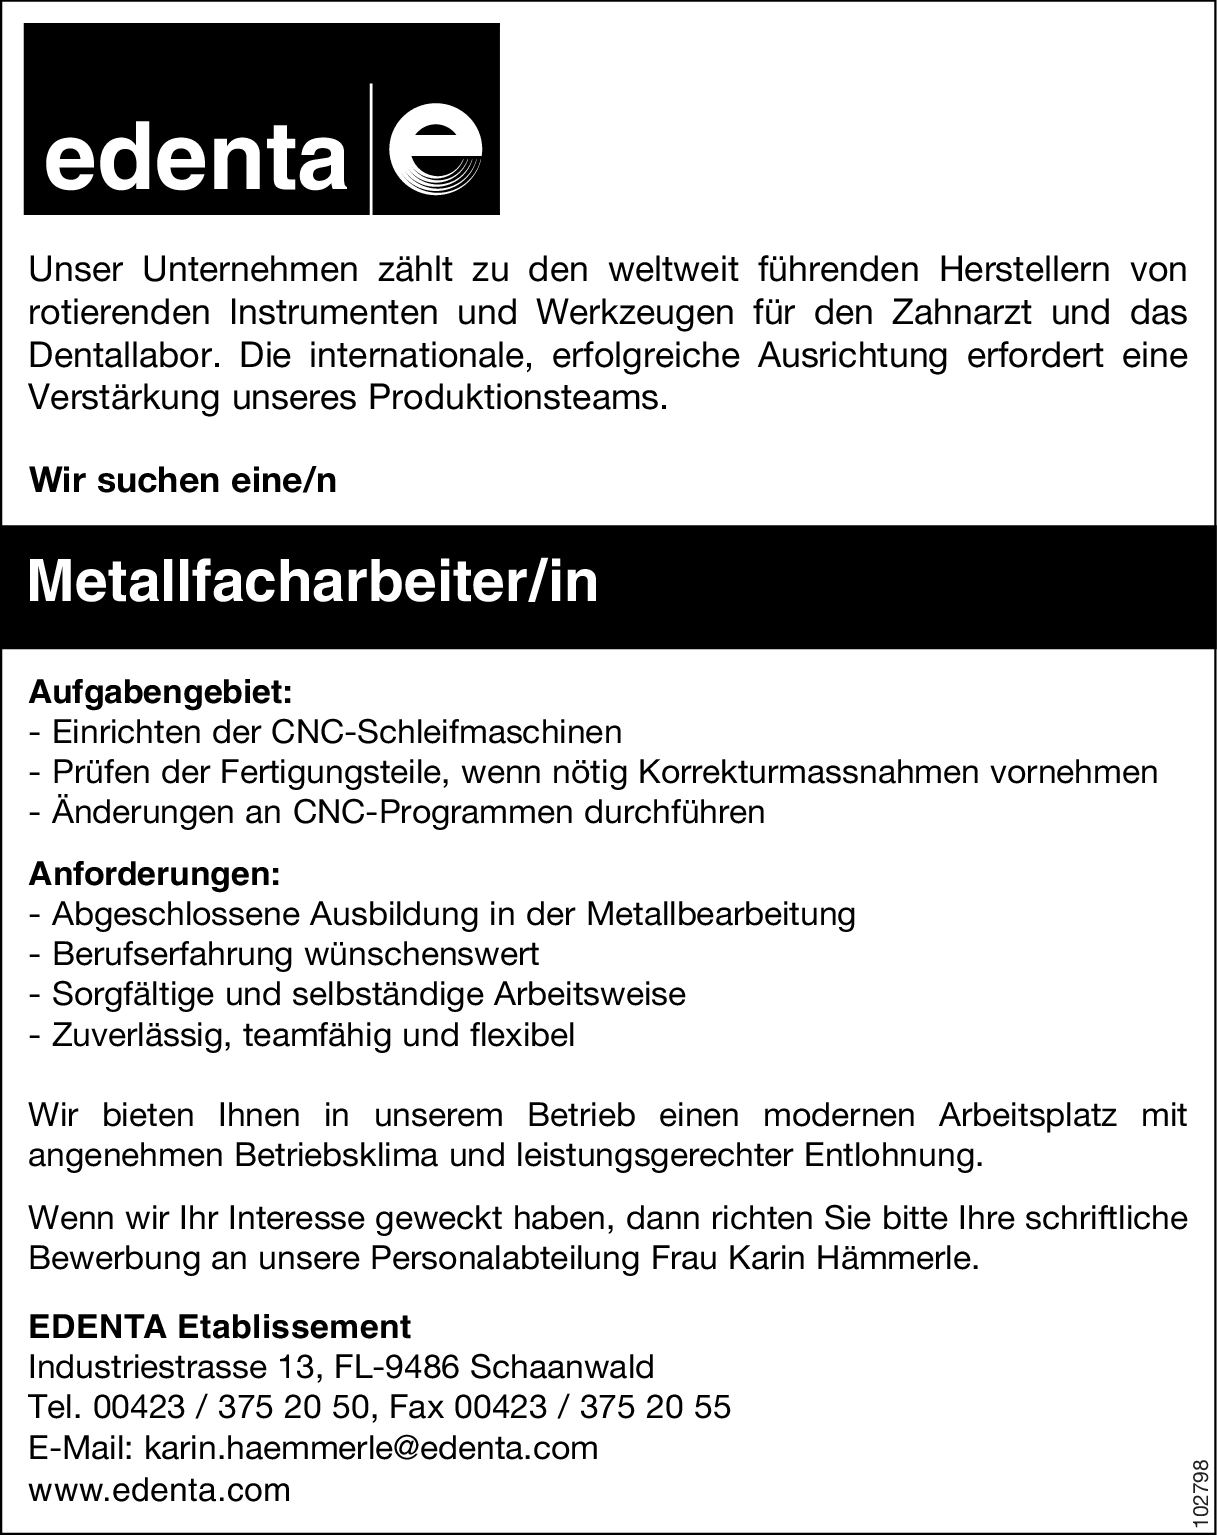 Metallfacharbeiter/in